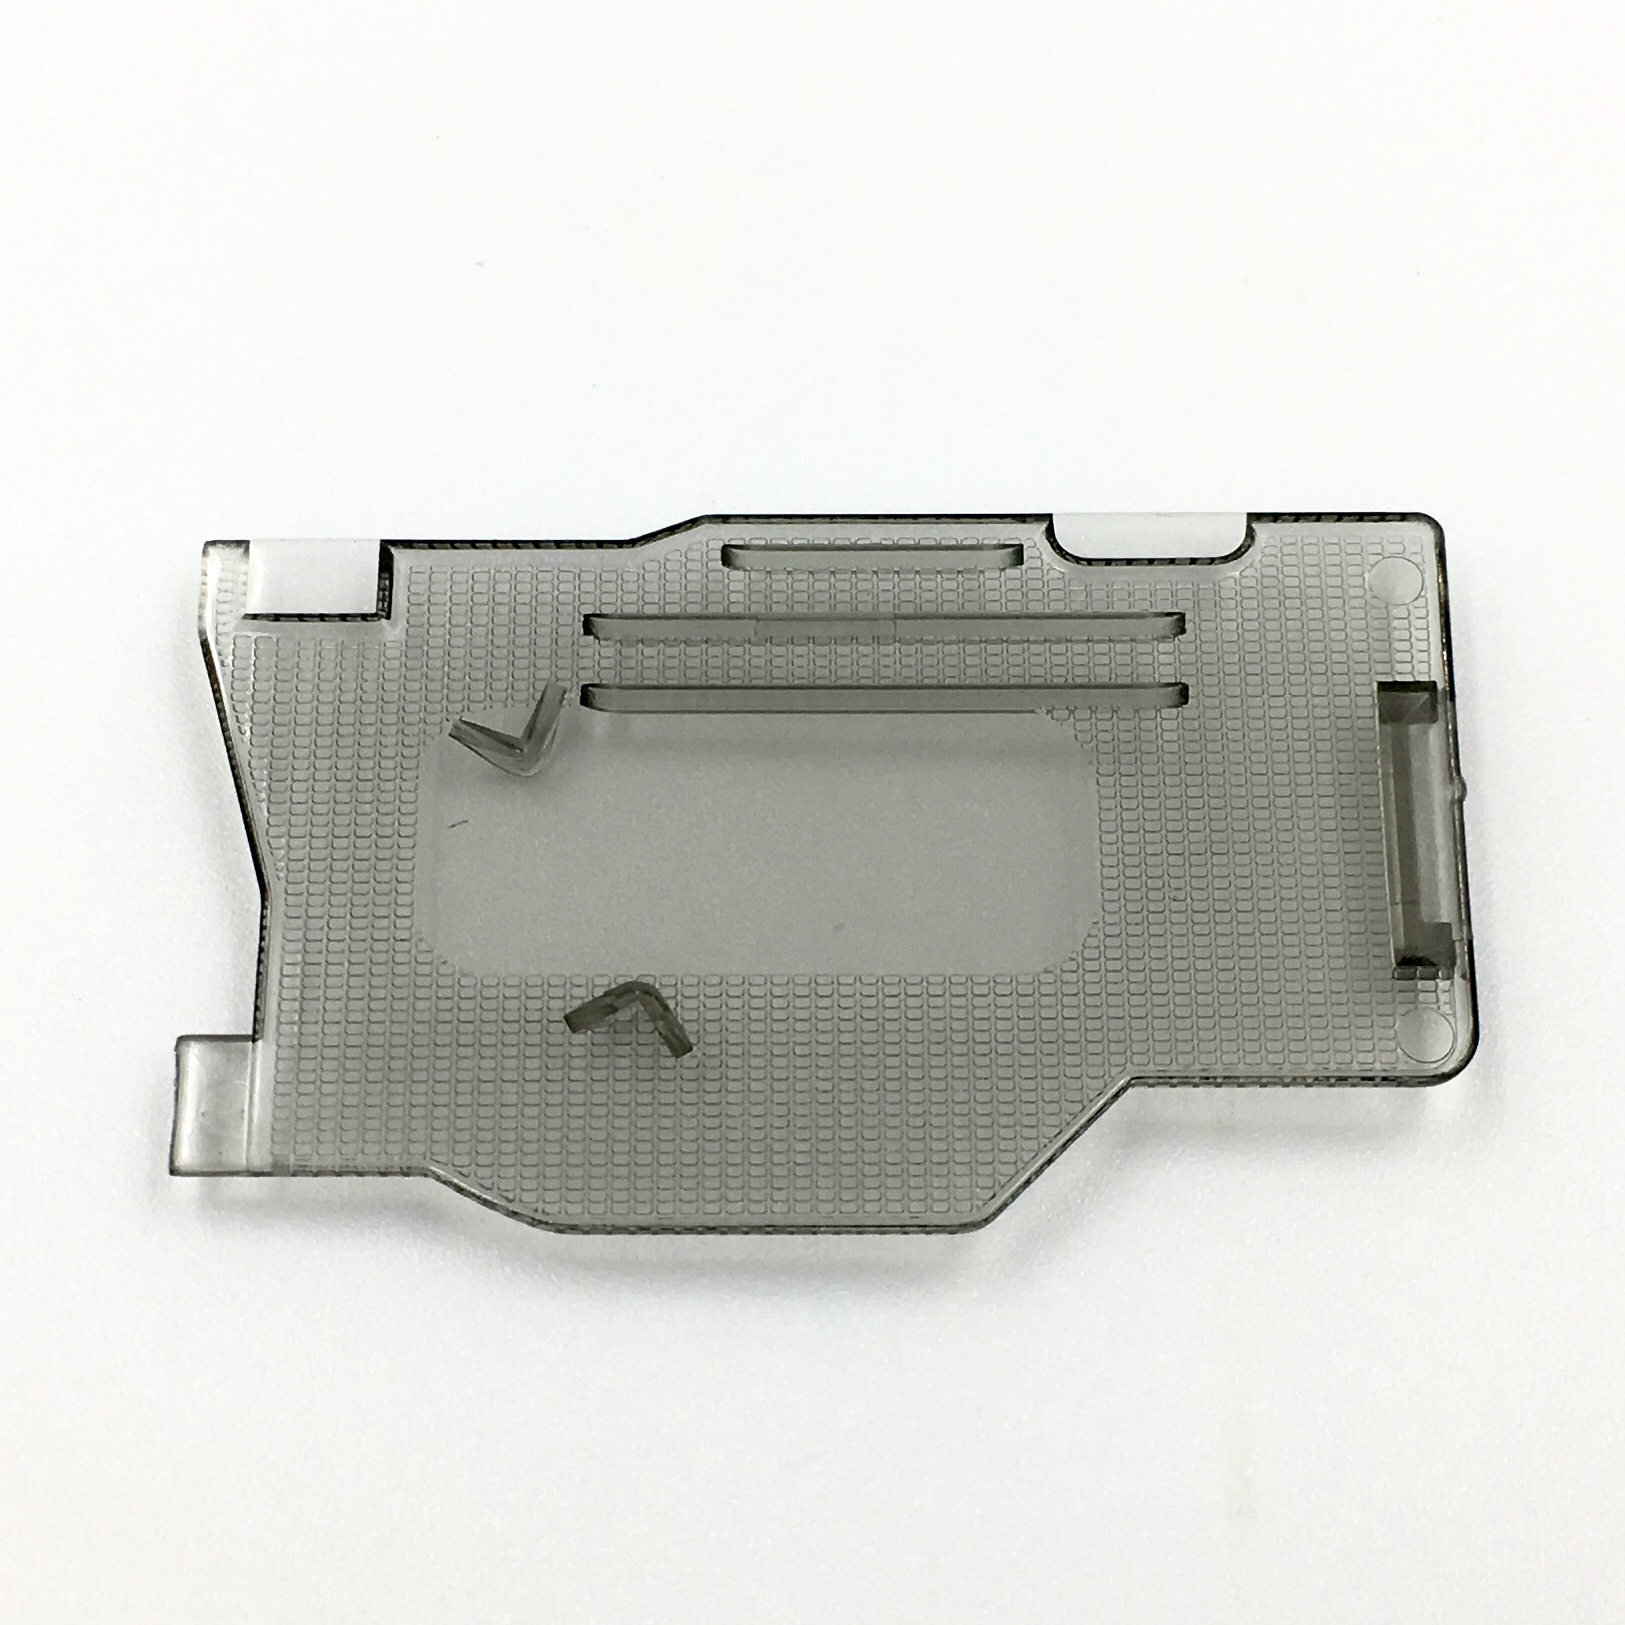 Needle Plate Cover - XG1887001